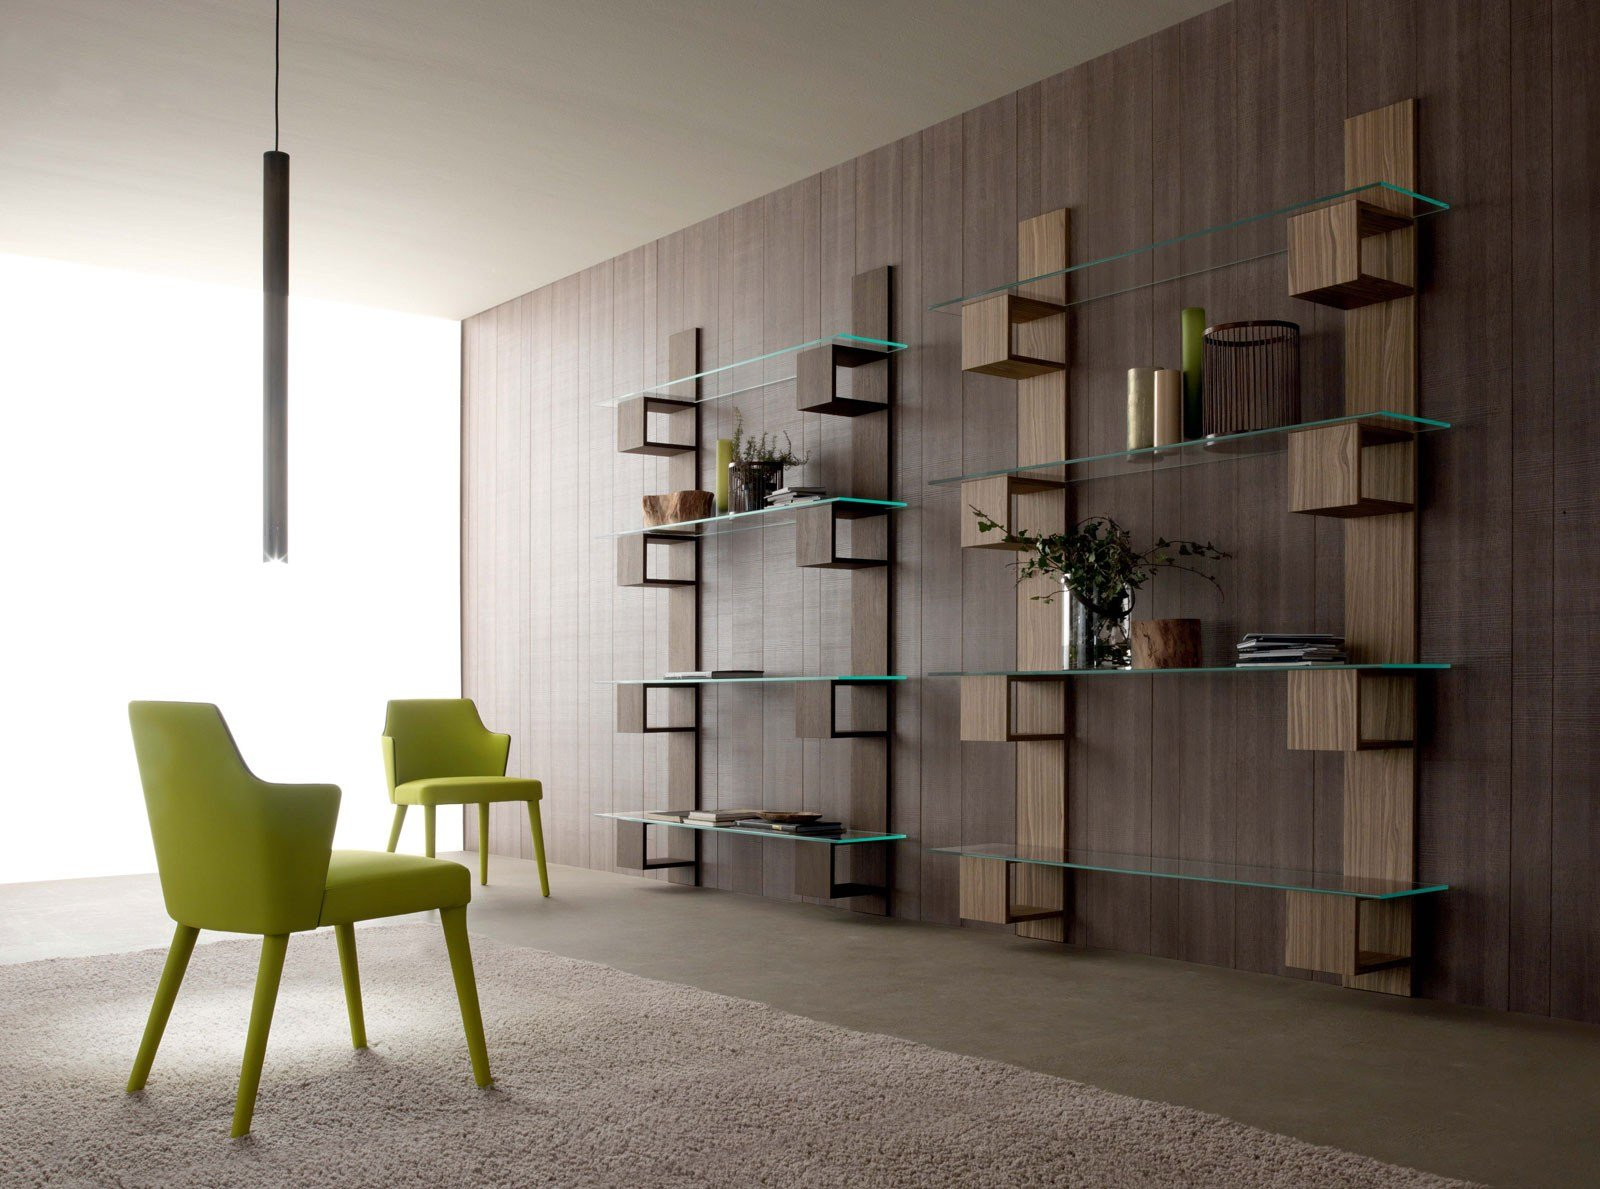 biblioth que murale composable infinity by italy dream design. Black Bedroom Furniture Sets. Home Design Ideas